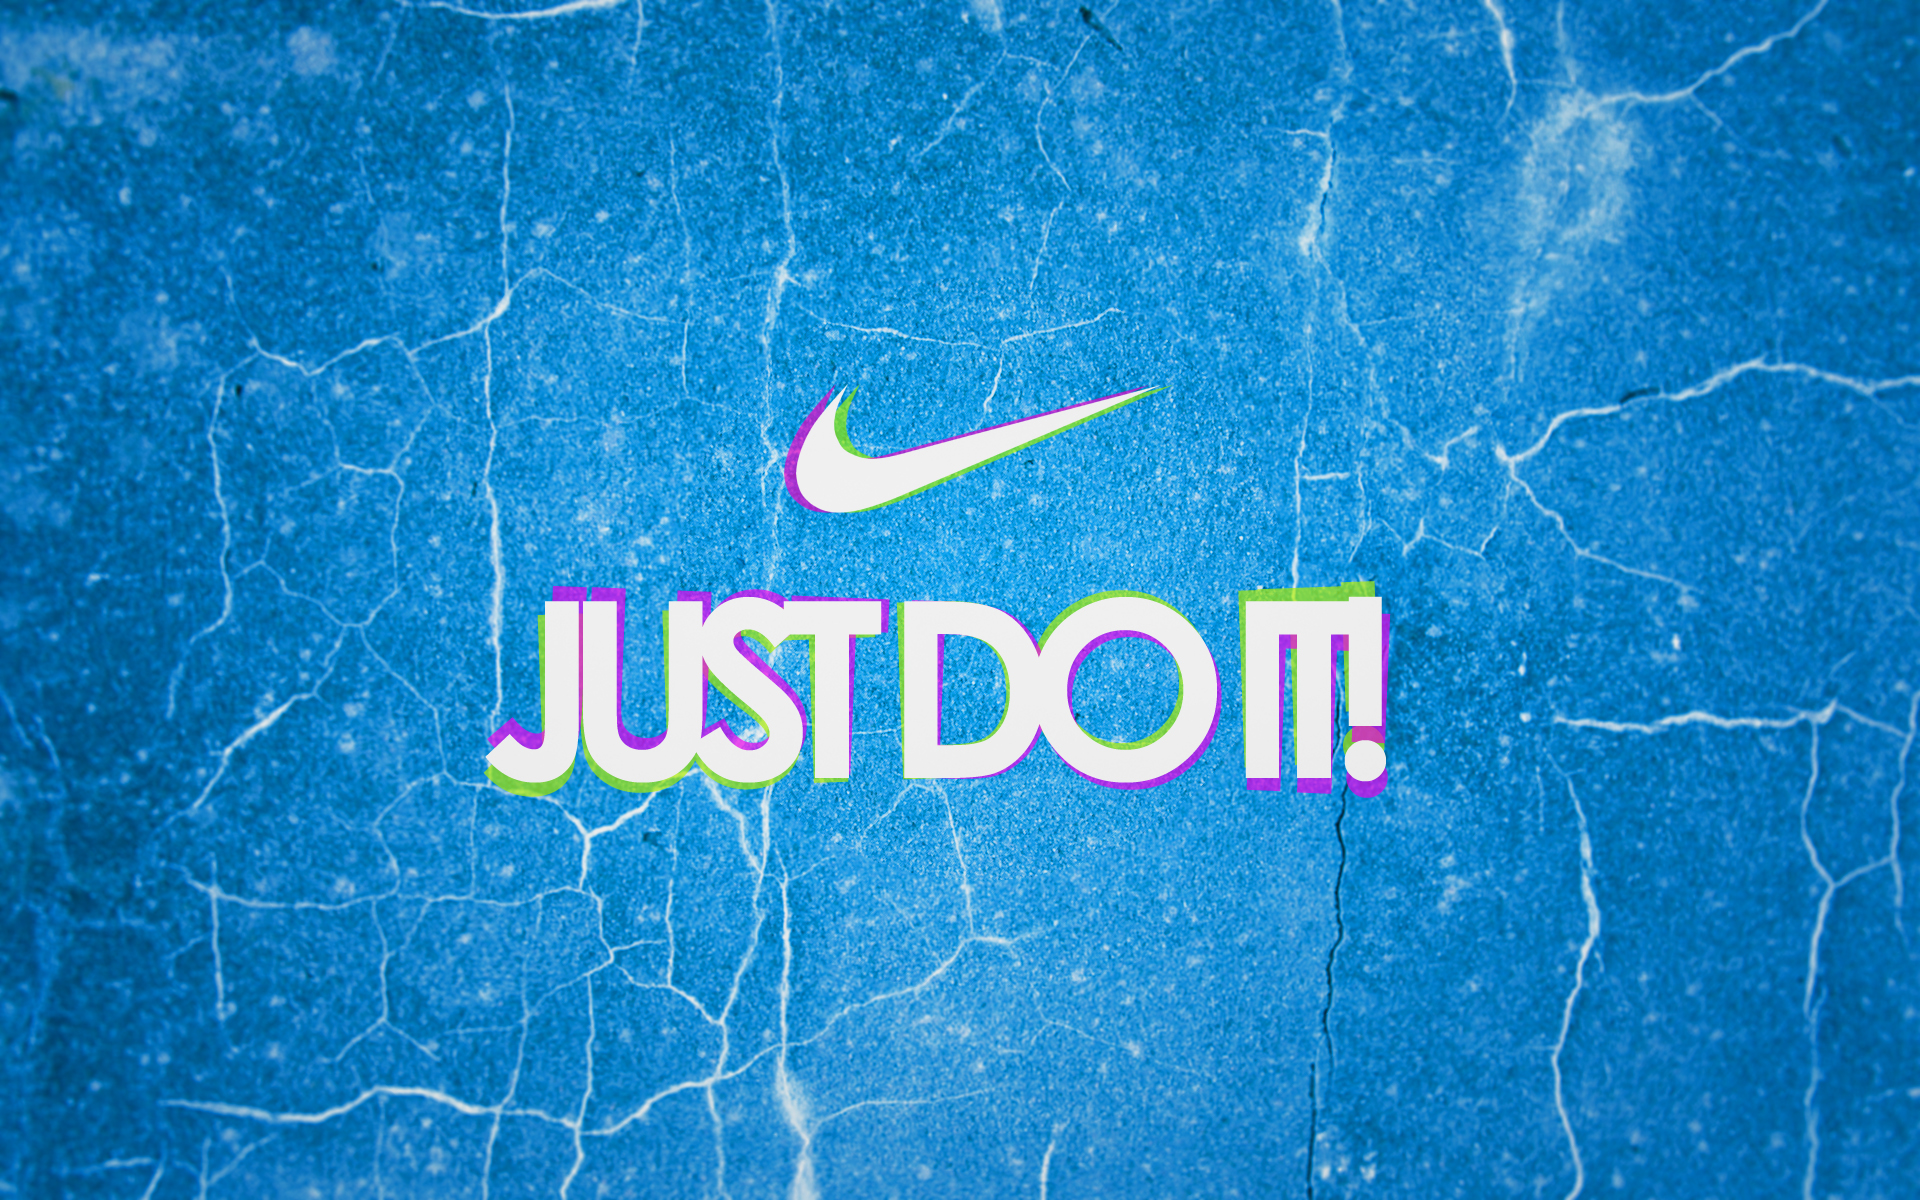 Nike Just Do It Wallpaper 1920x1200 71353